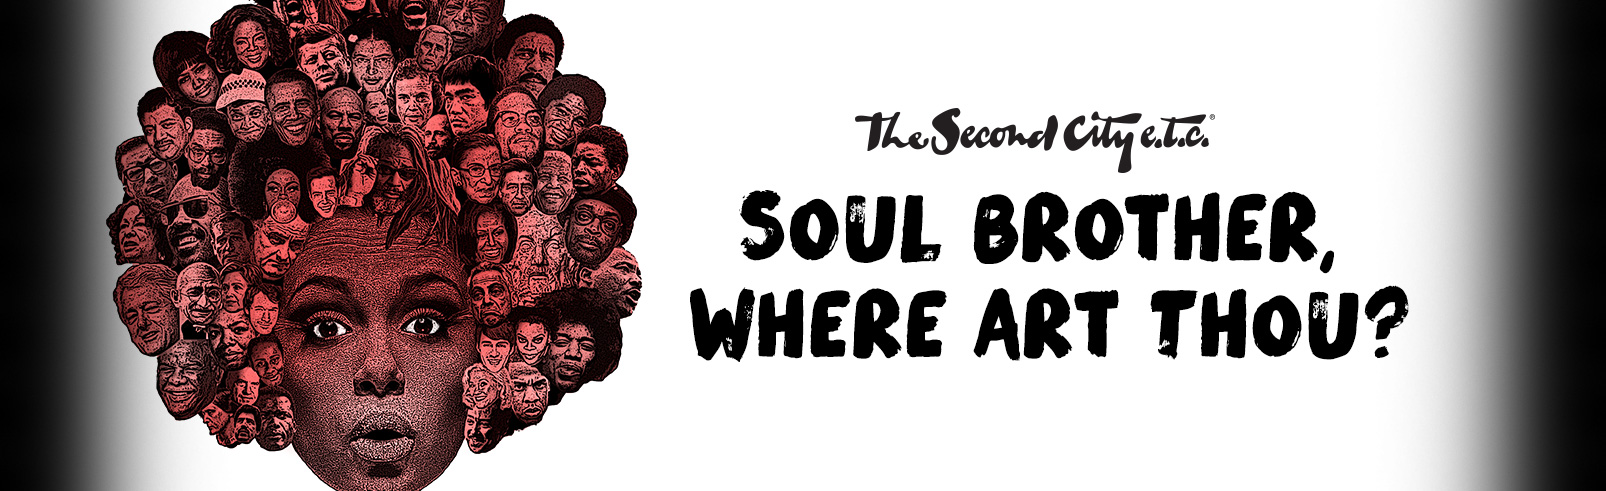 Soul Brother Where Art Thou?